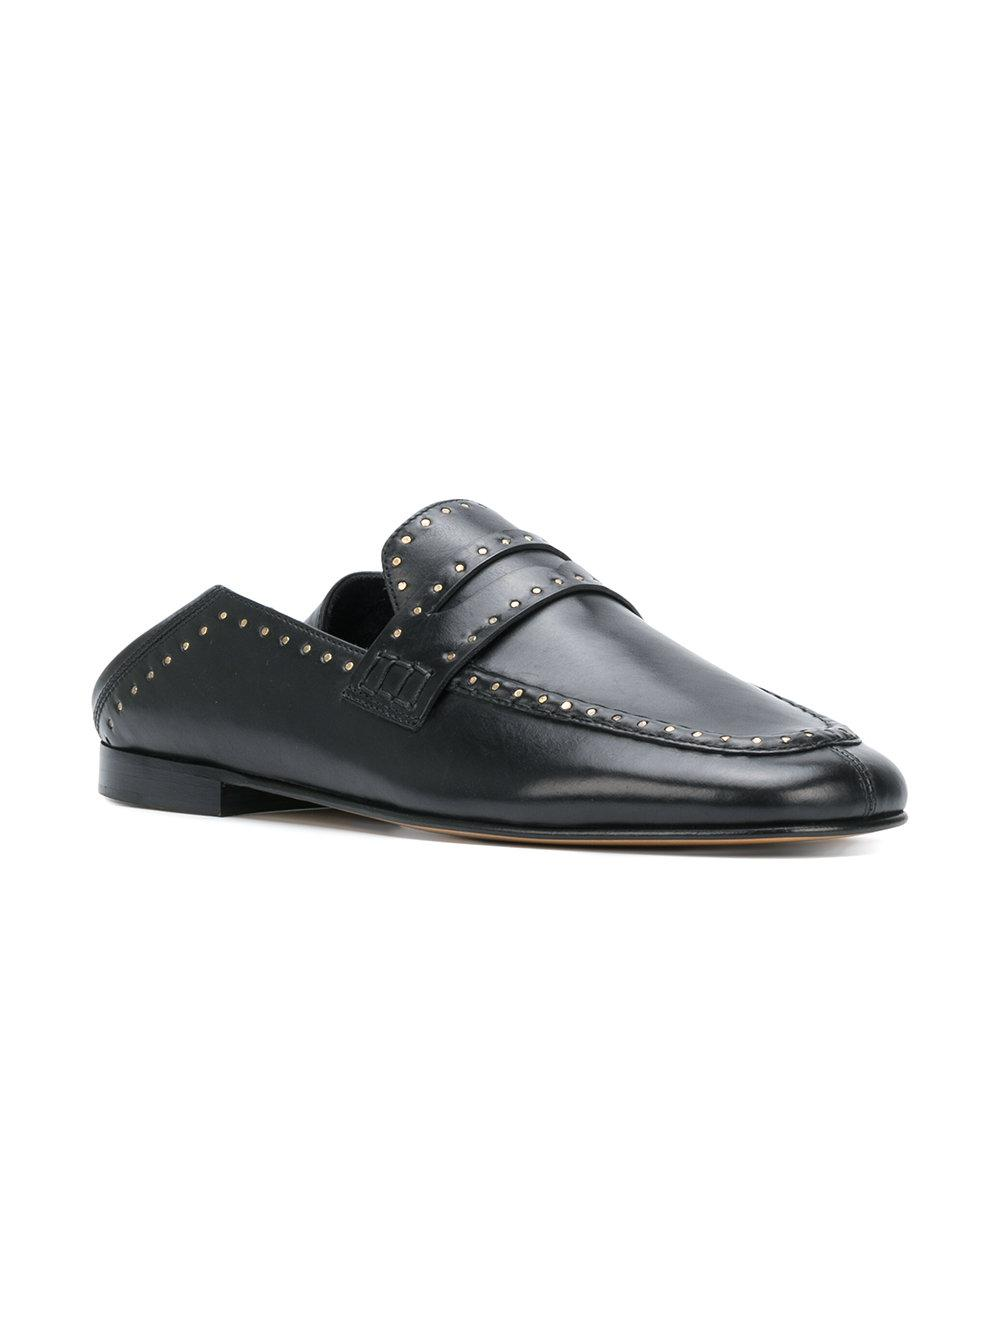 391adda06c0 Isabel Marant Fezzy Loafers in Black - Save 32.38636363636364% - Lyst